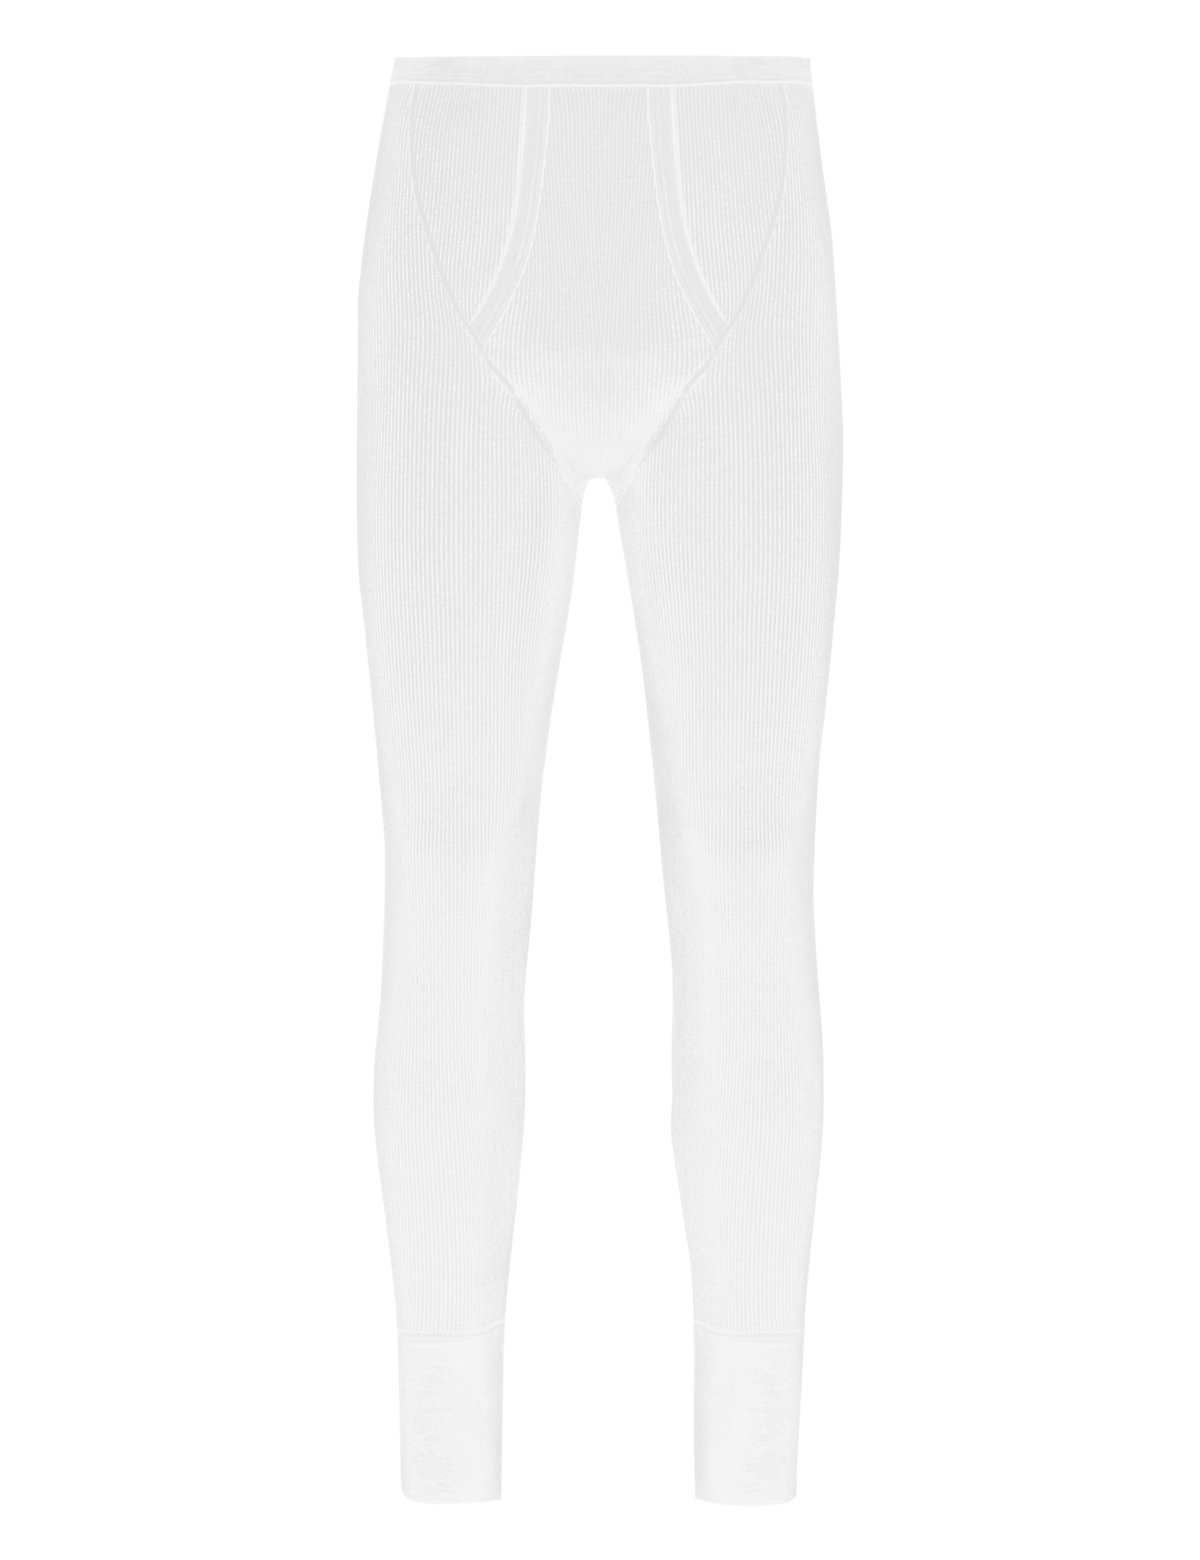 Marks & Spencer White Cotton Rich Thermal Long Pants